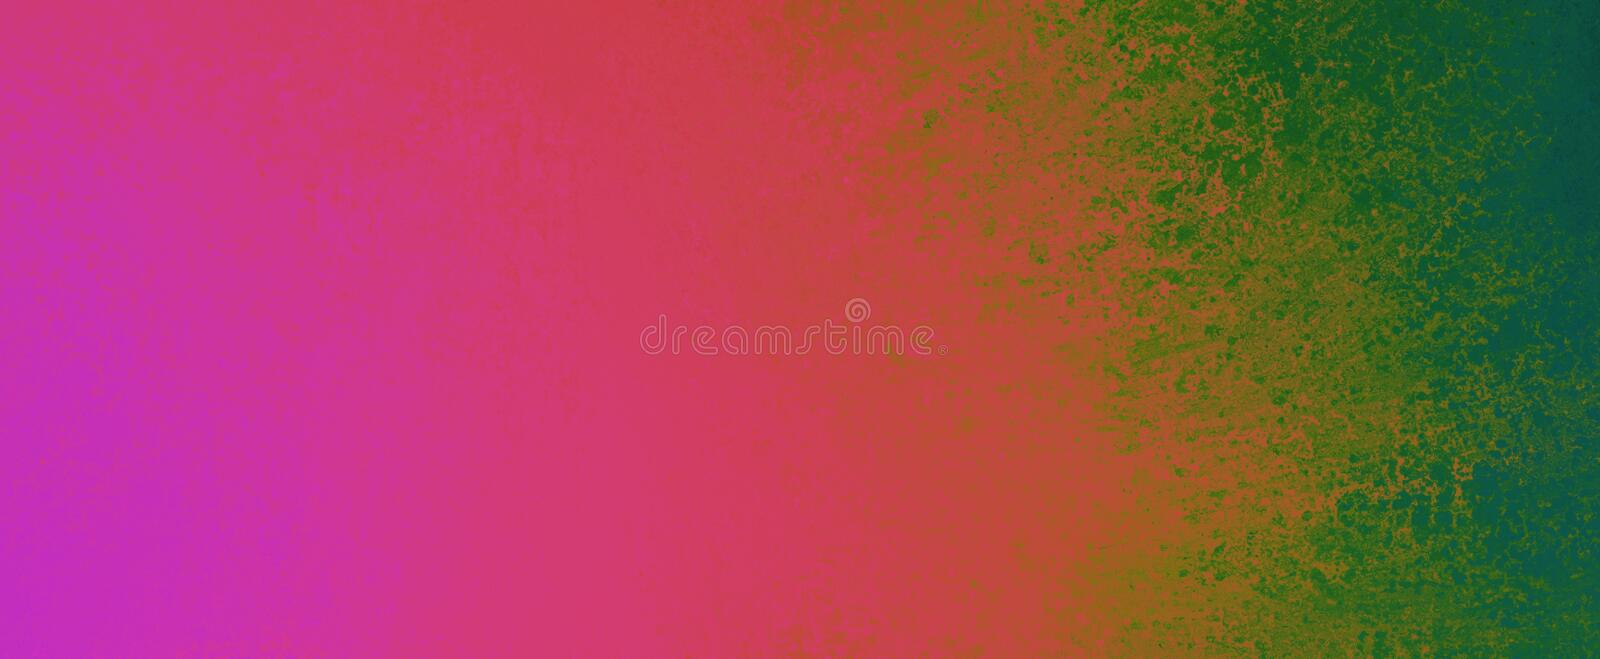 Bold background design with purple pink red and green sponged paint texture. In graphic art layout, creative fun and bright color abstract background royalty free illustration